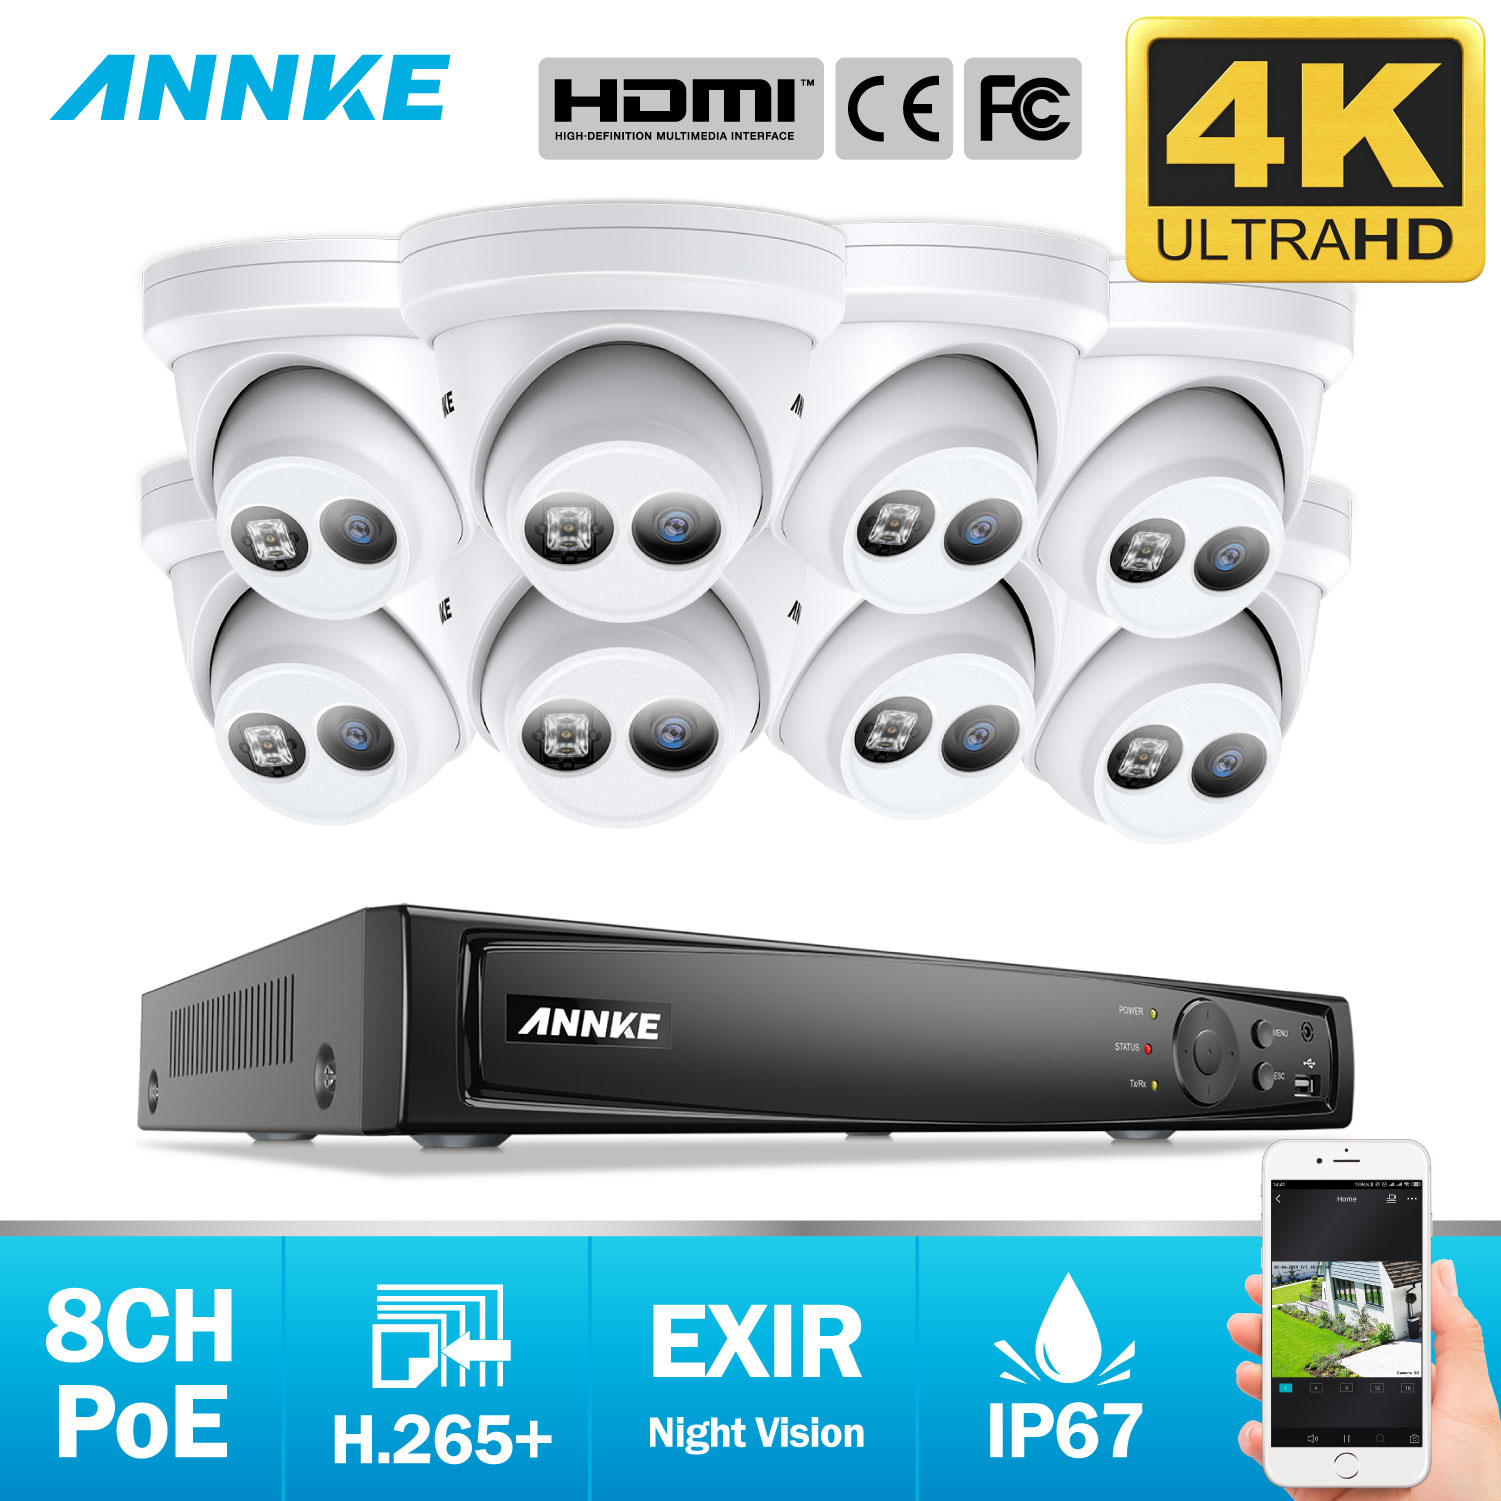 ANNKE 8CH 4K Ultra HD POE Network Video Security System 8MP H.265+ NVR With 8X 8MP 30m EXIR Night Vision Weatherproof IP Camera